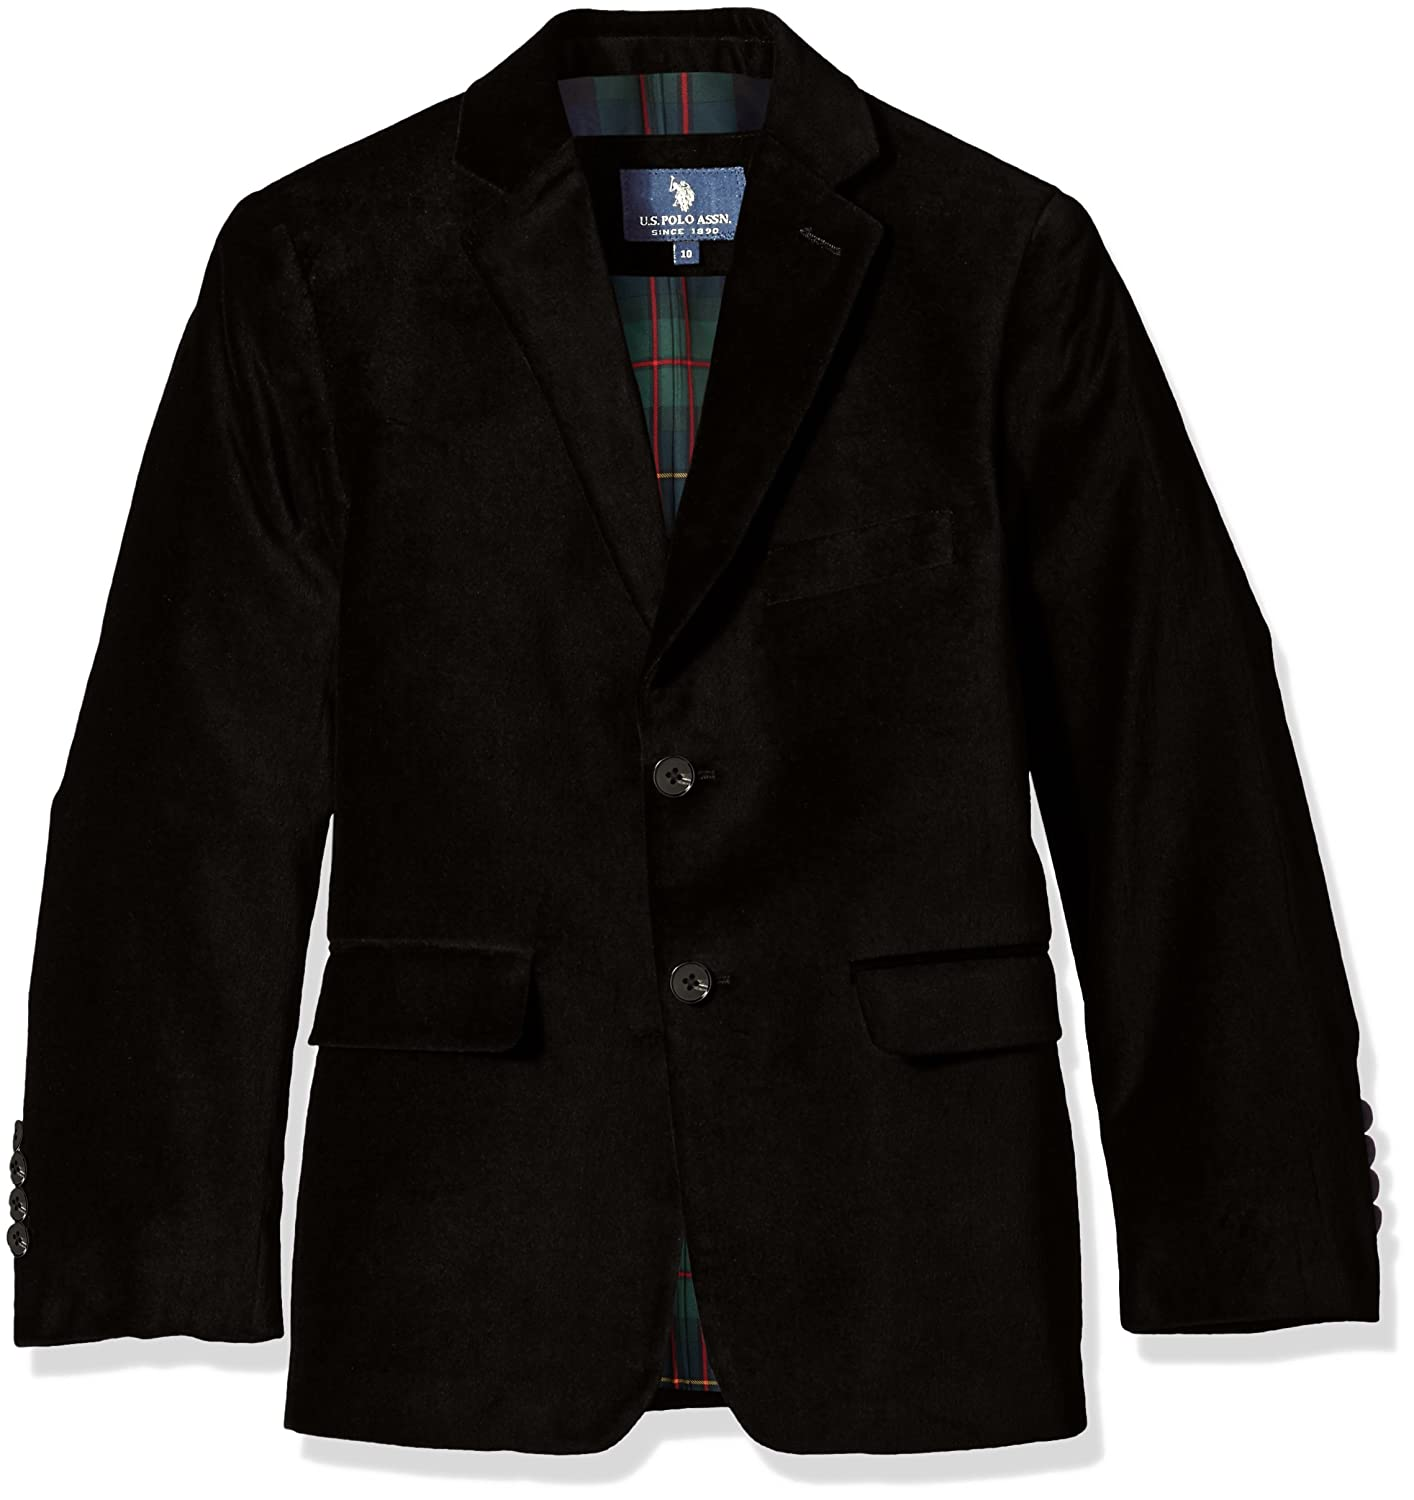 U.S. POLO ASSN. Boys' Sport Coat CDM101